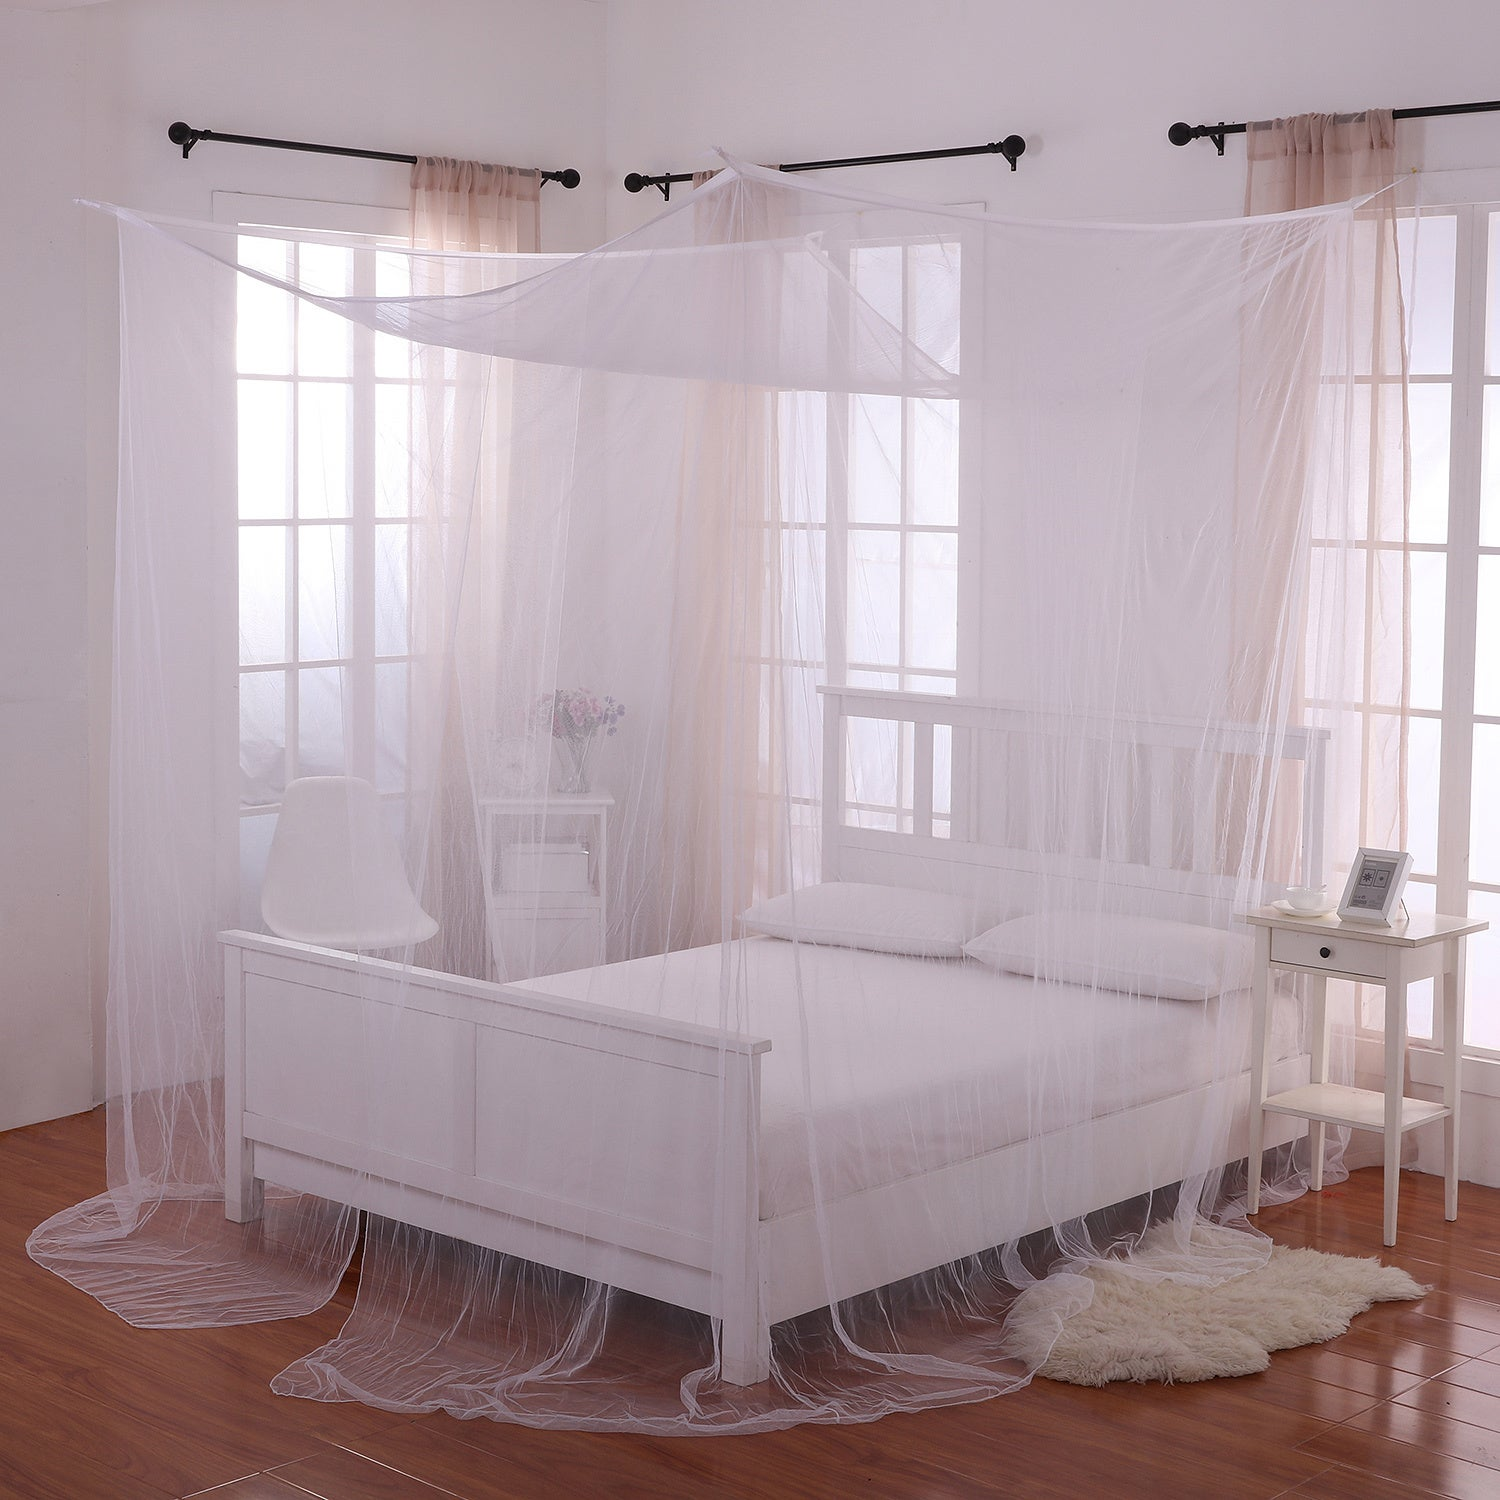 Shop Black Friday Deals On Palace 4 Post Sheer Panel Bed Canopy On Sale Overstock 6306985